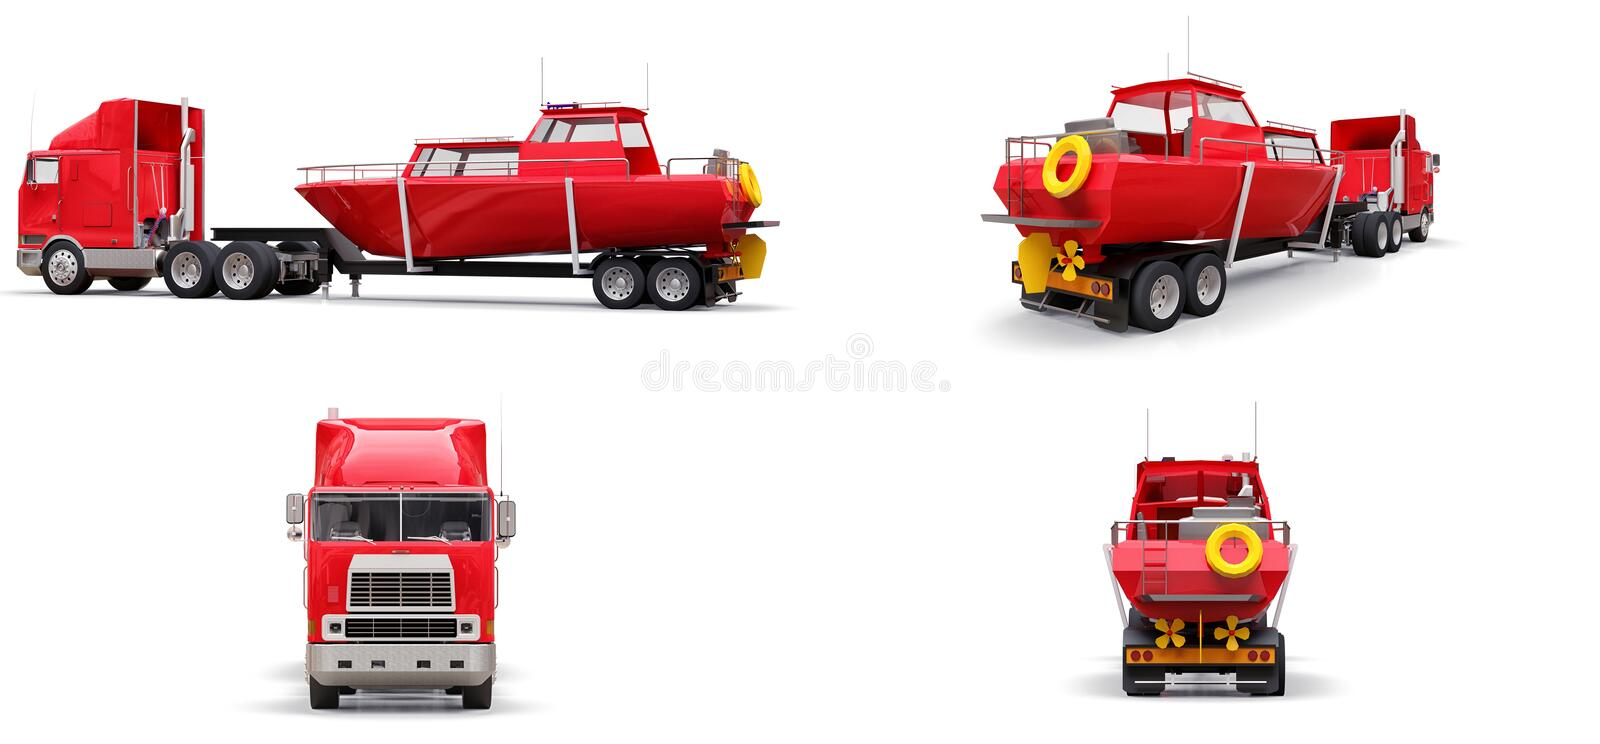 Set big red truck with a trailer for transporting a boat on a white background. 3d rendering. vector illustration